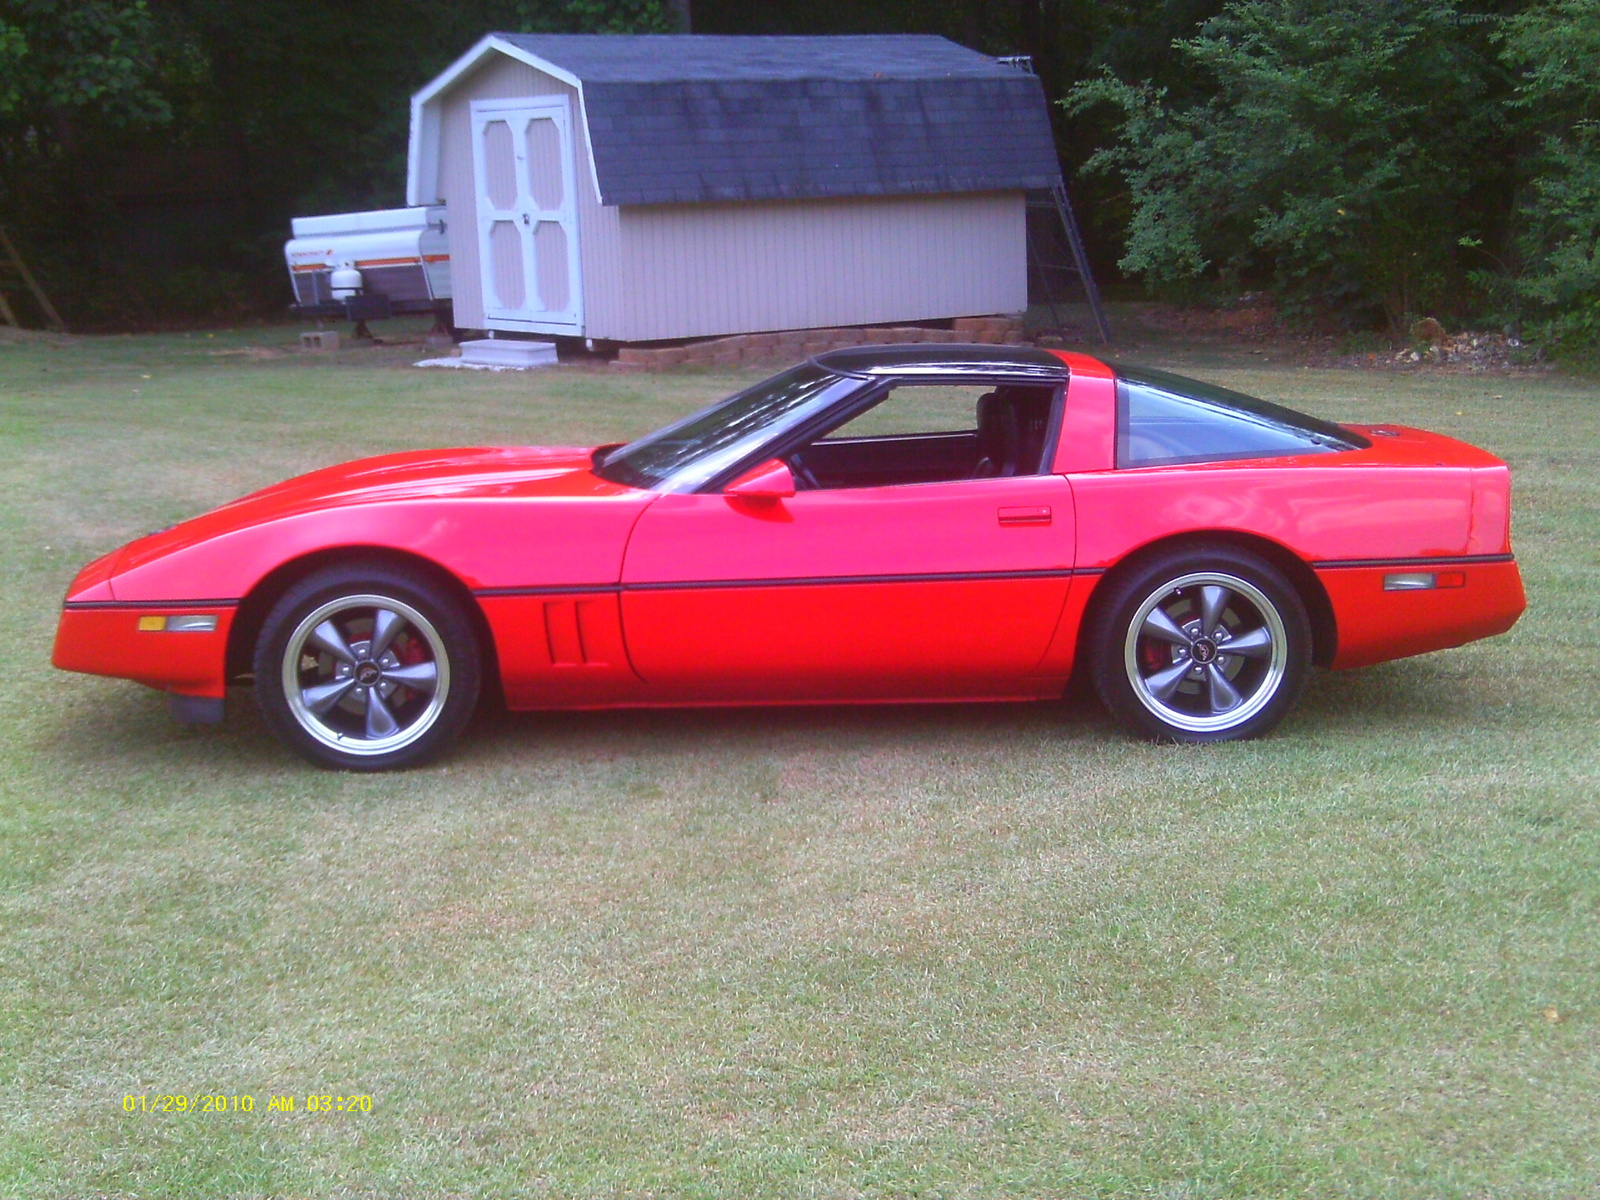 chevrolet car dealers with 1984 Chevrolet Corvette Pictures C419 Pi35957461 on How Far Can You Drive On A Spare Tire together with 1987 Ford Mustang Pictures C3704 pi29669888 additionally General Motors Officially Partners With Isuzu For Medium Duty Trucks also 1984 Chevrolet Corvette Pictures C419 pi35957461 further 1965 Chevrolet Corvette Pictures C410 pi36212416.